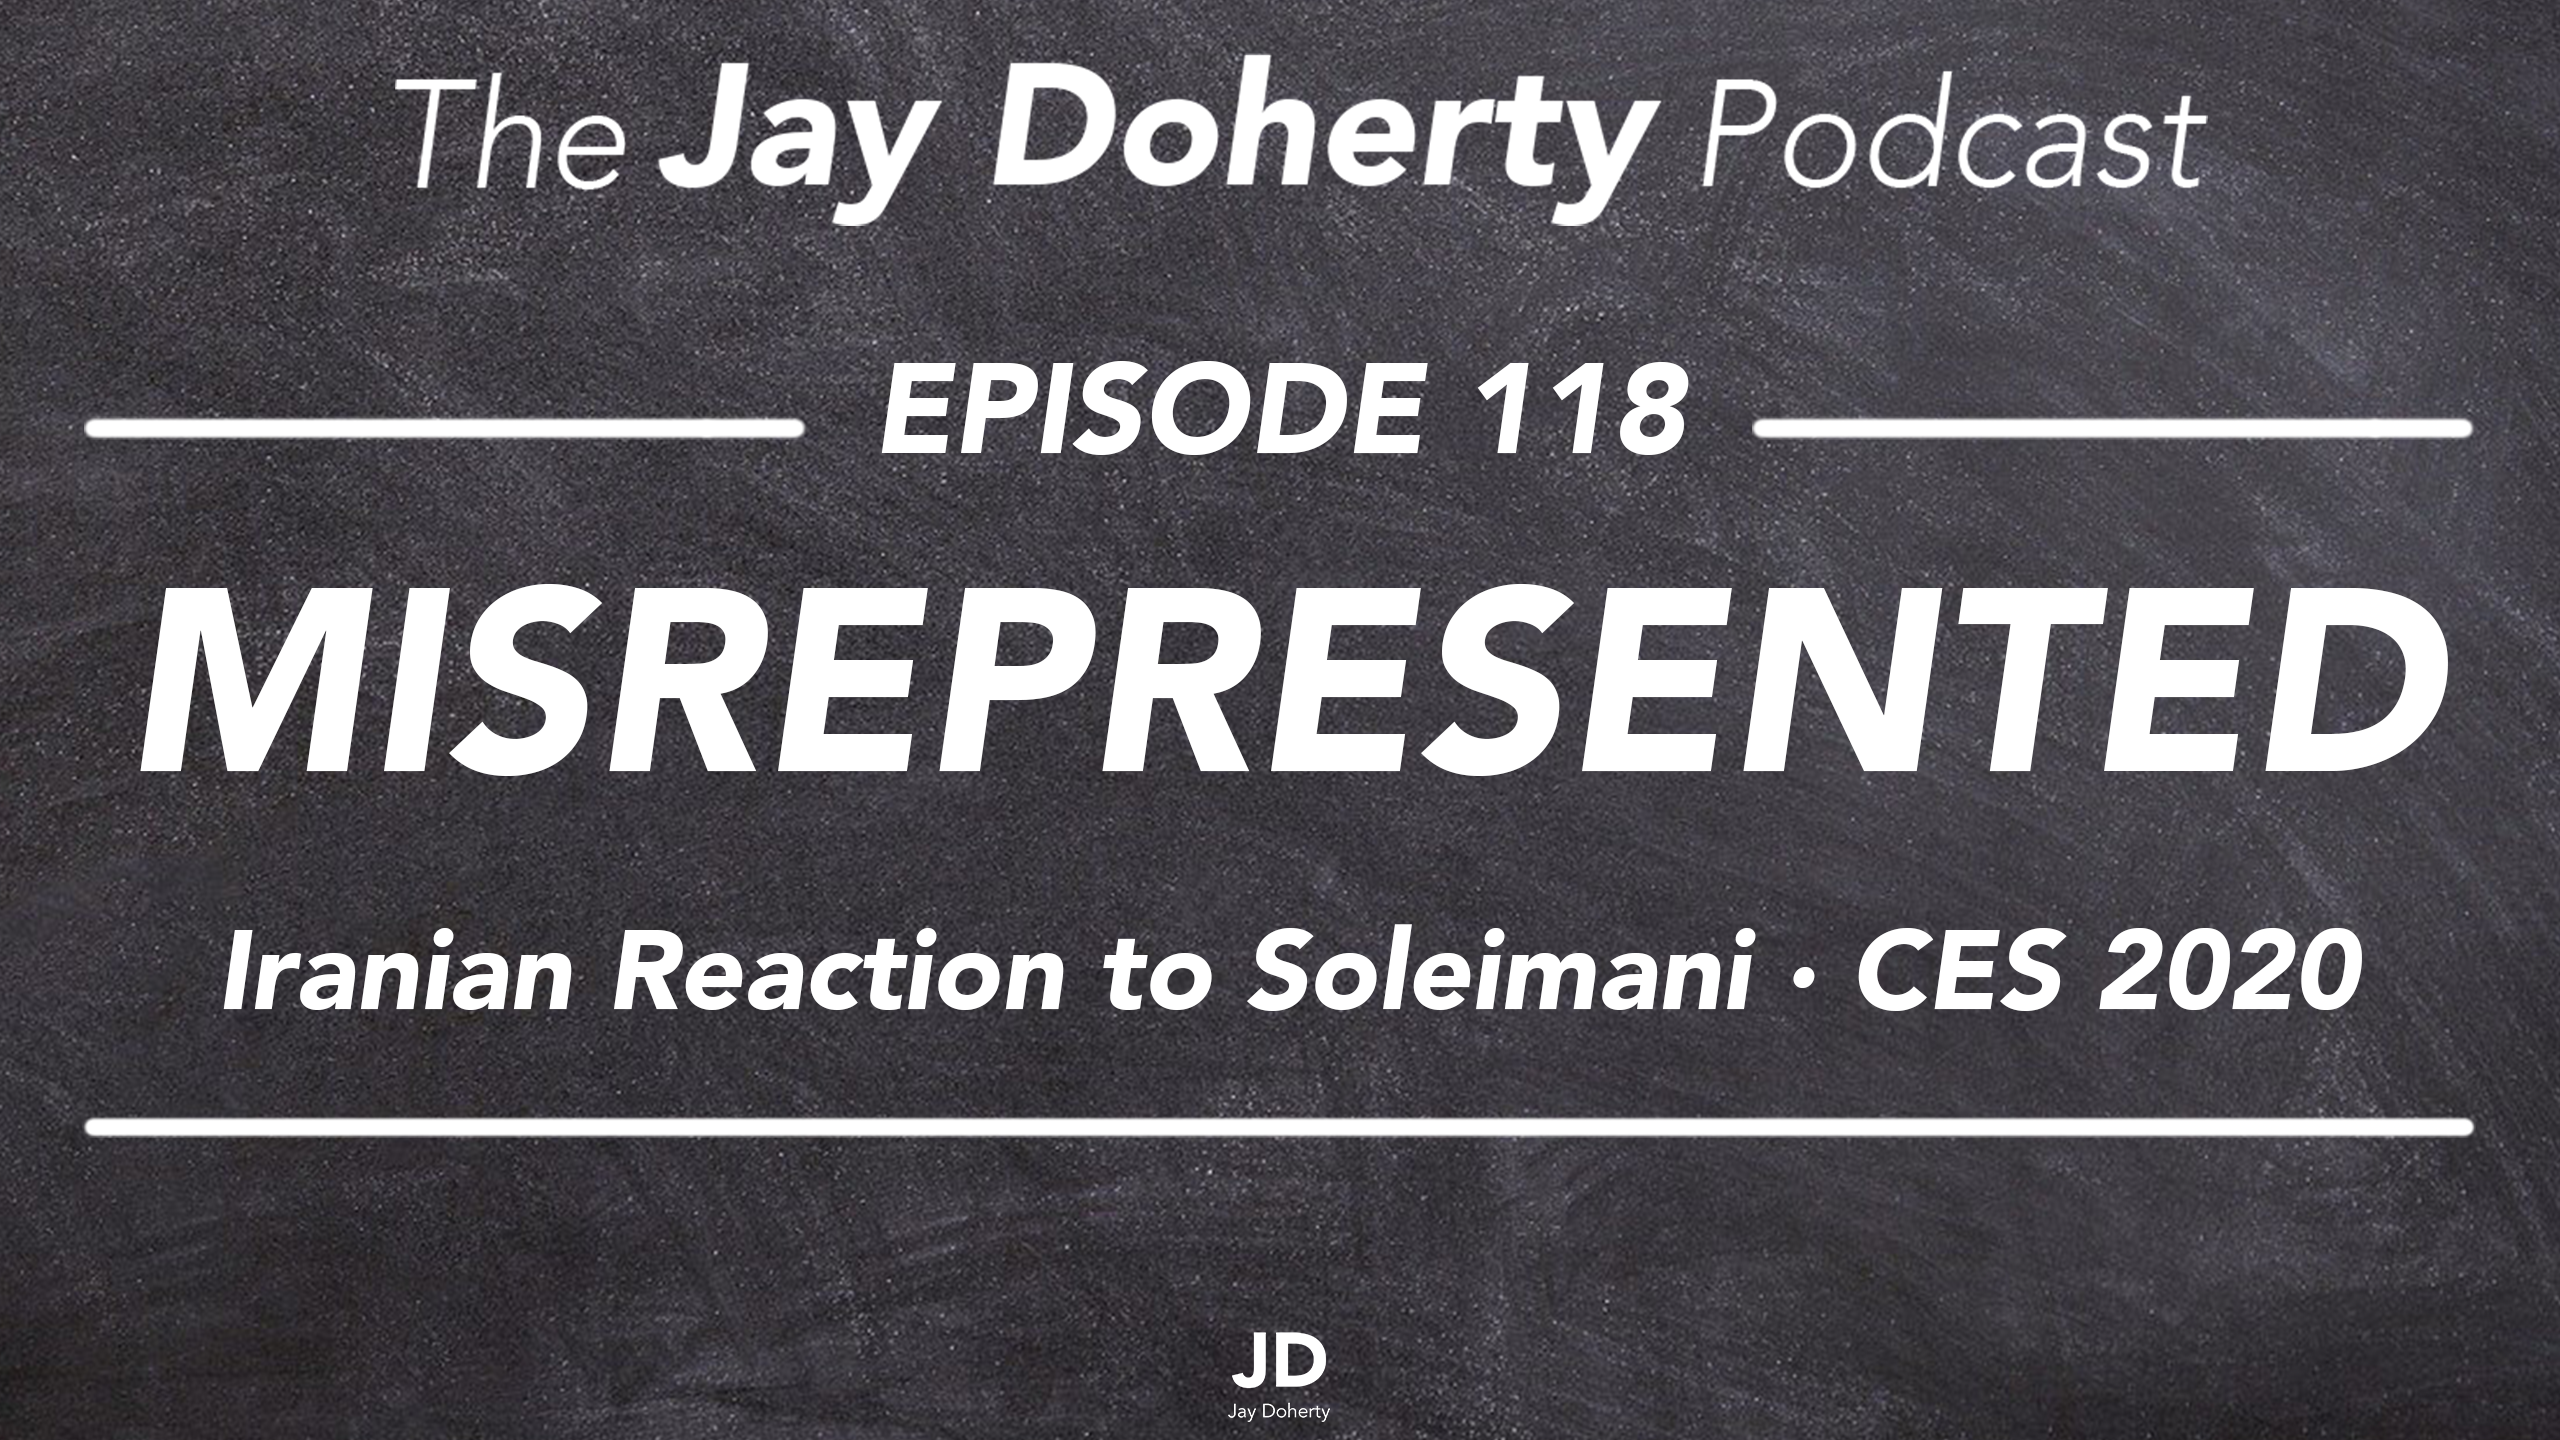 118 – Misrepresented | Iranian Reaction to Soleimani Death, CES 2020